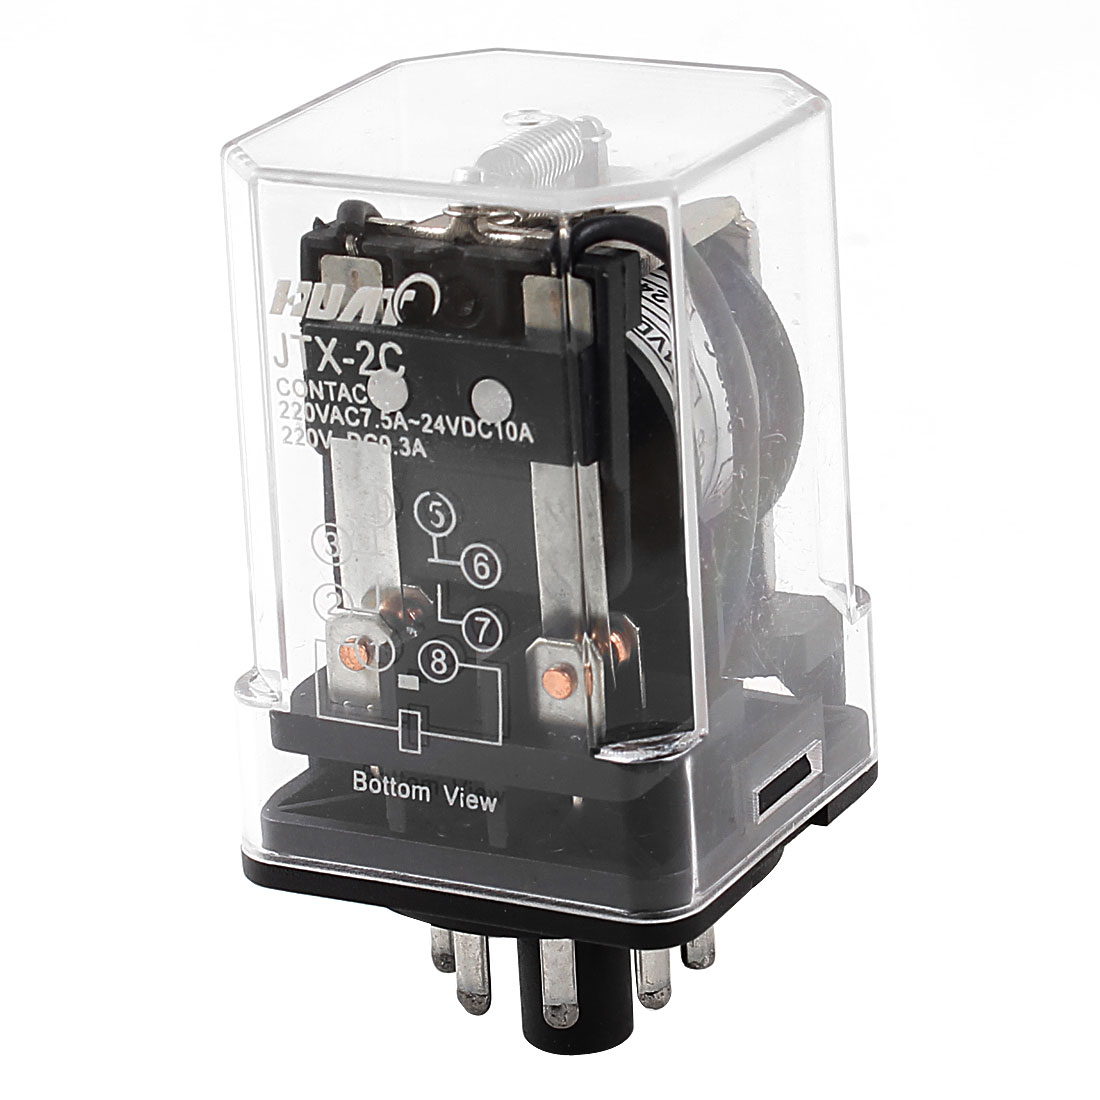 Motor Control 8-Pin DPDT DP2T Electromagnetic Relay DC 24V Coil